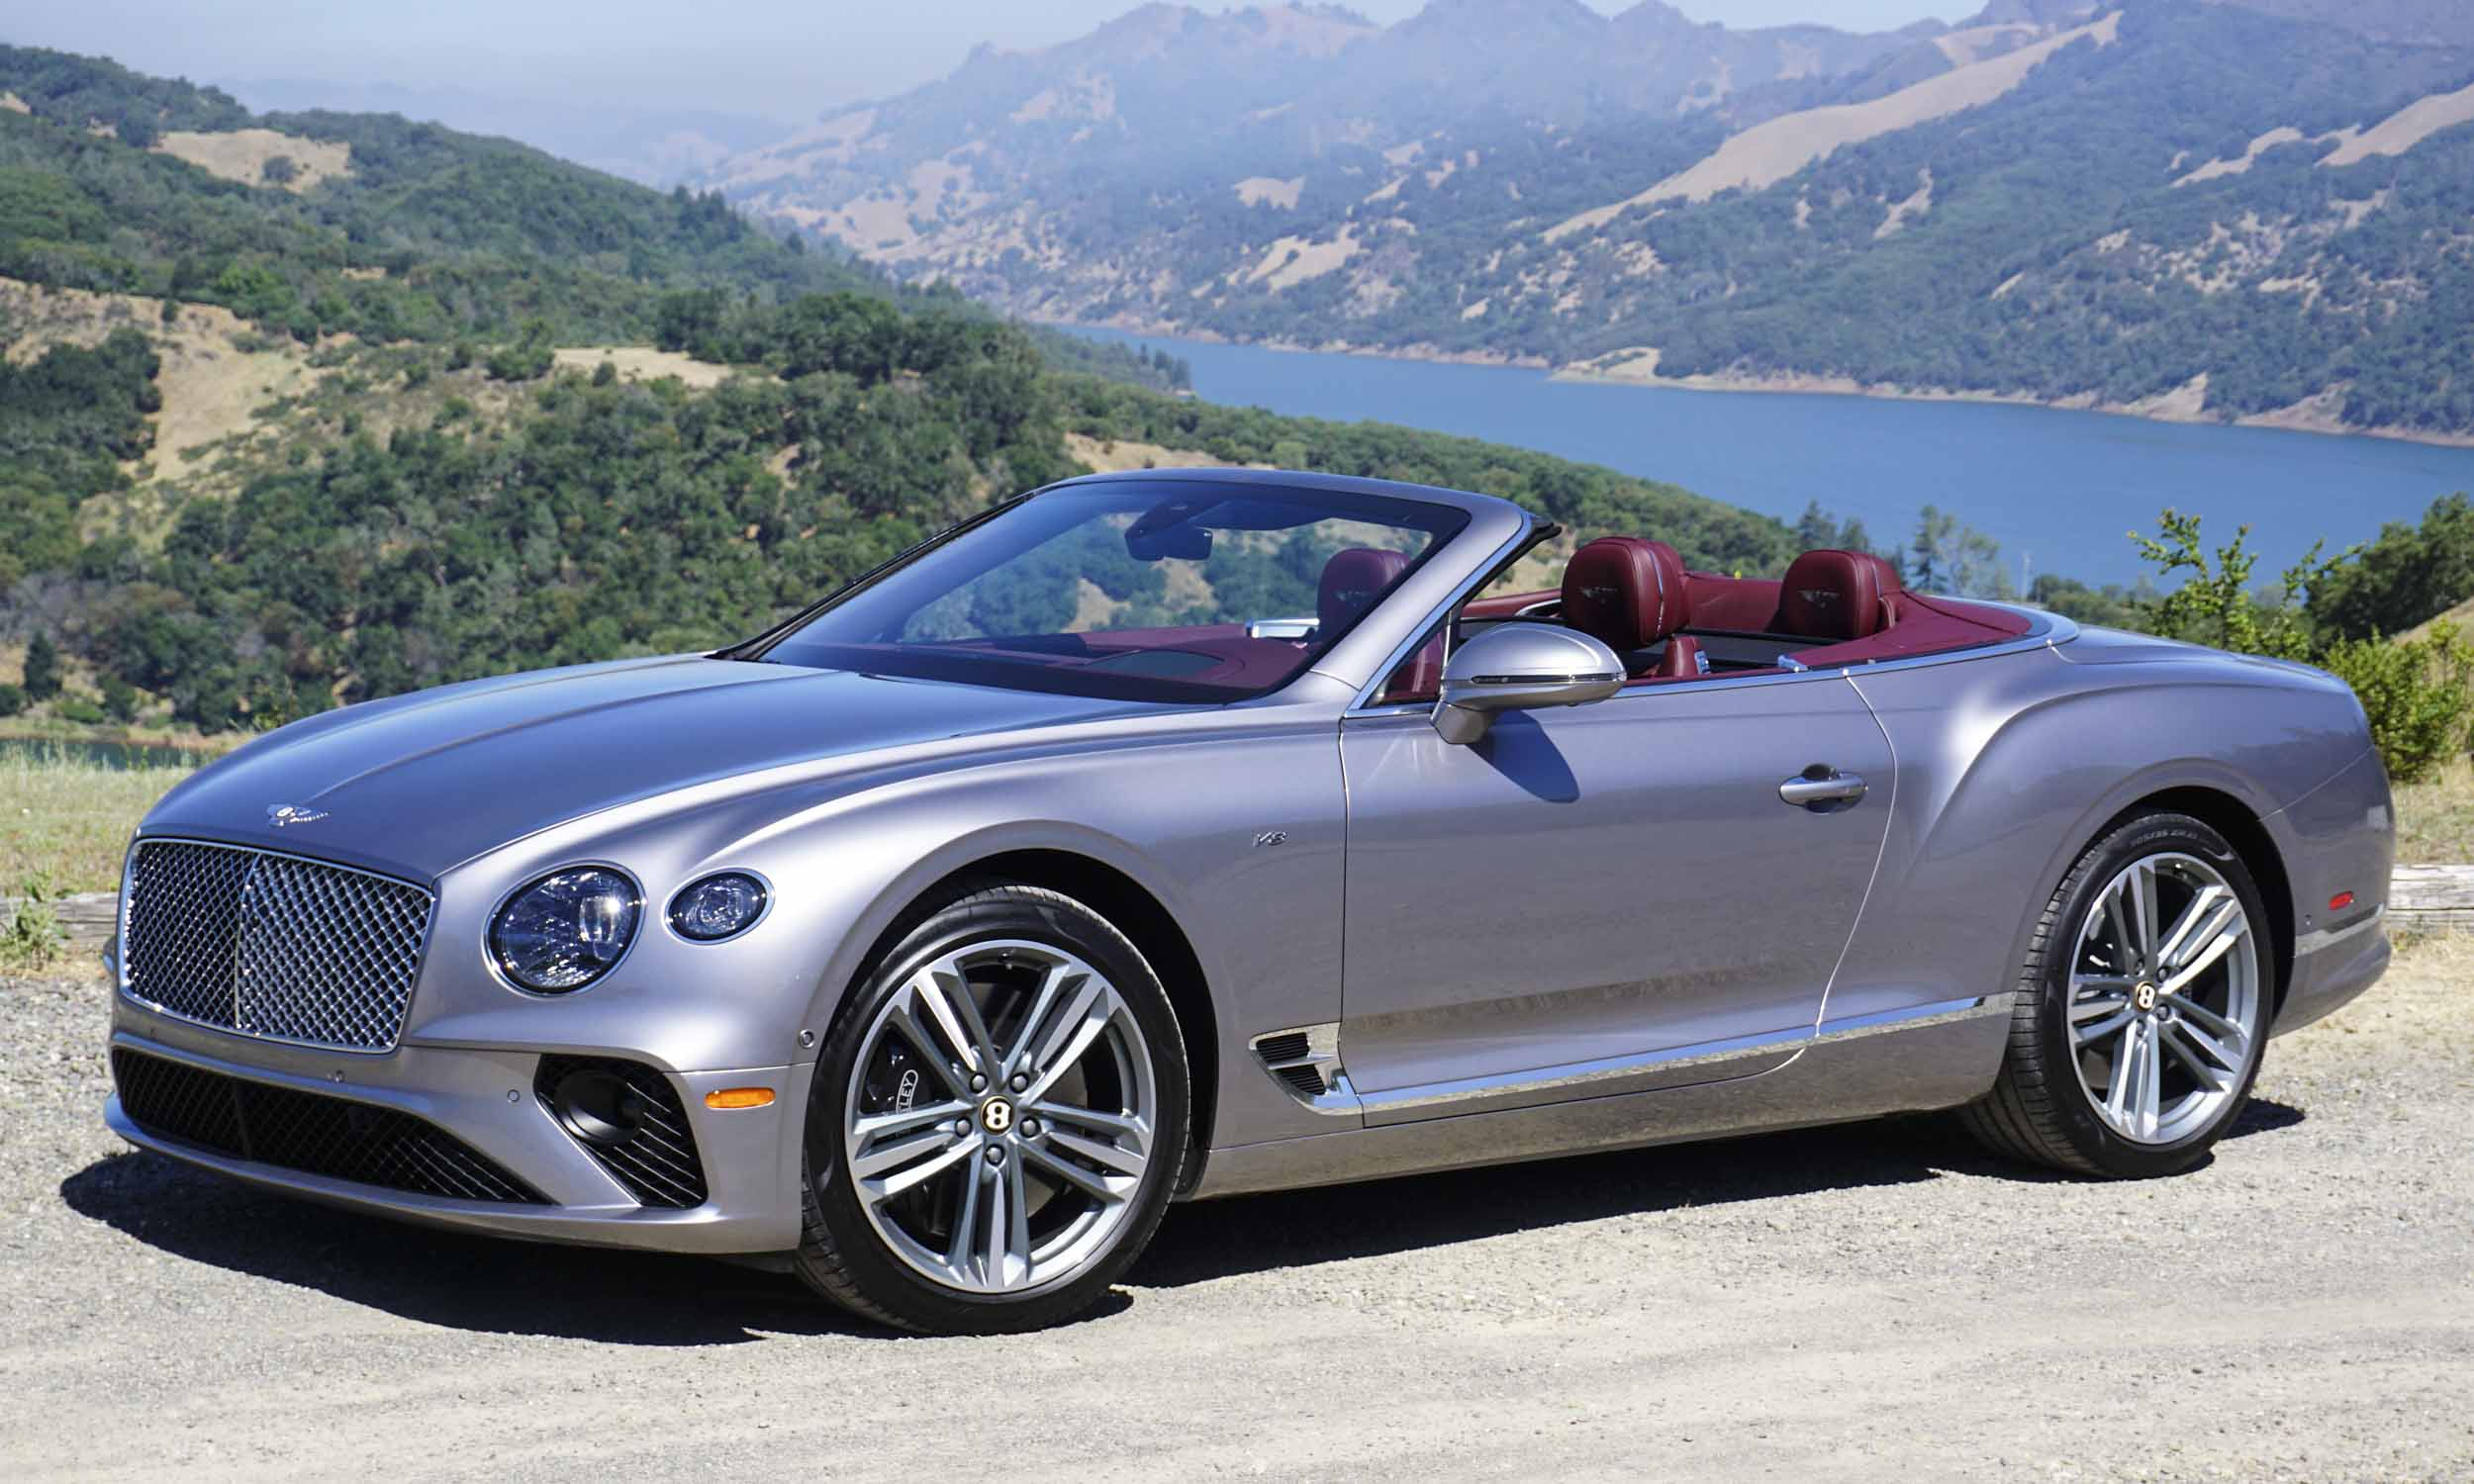 2020 Bentley Continental GT V8: First Drive Review